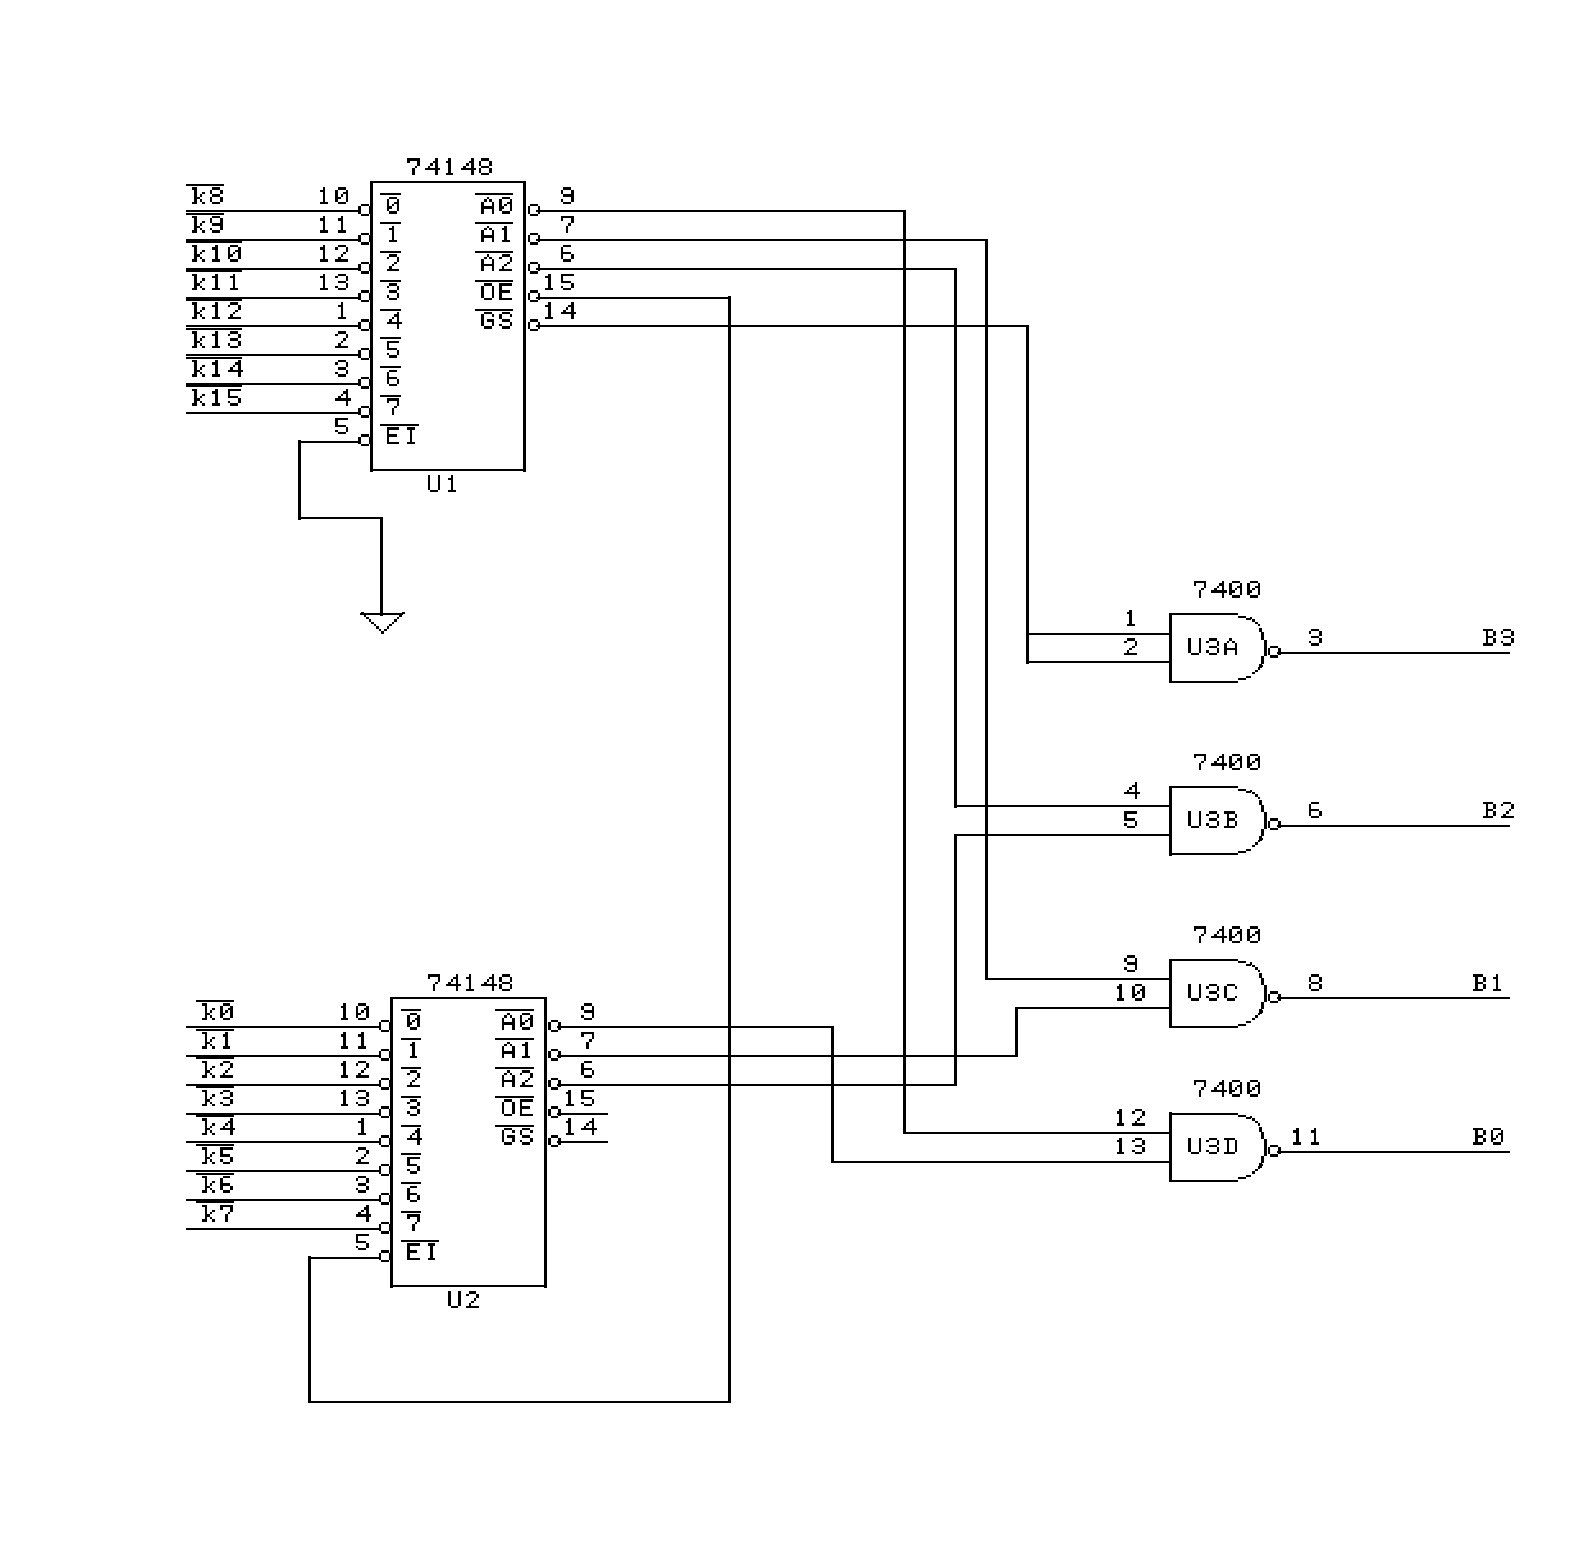 heidenhain encoder wiring diagram Collection-Heidenhain Encoder Wiring Diagram Beautiful Optical Incremental Encoder Controls Robots and Drones Wiring 7-l